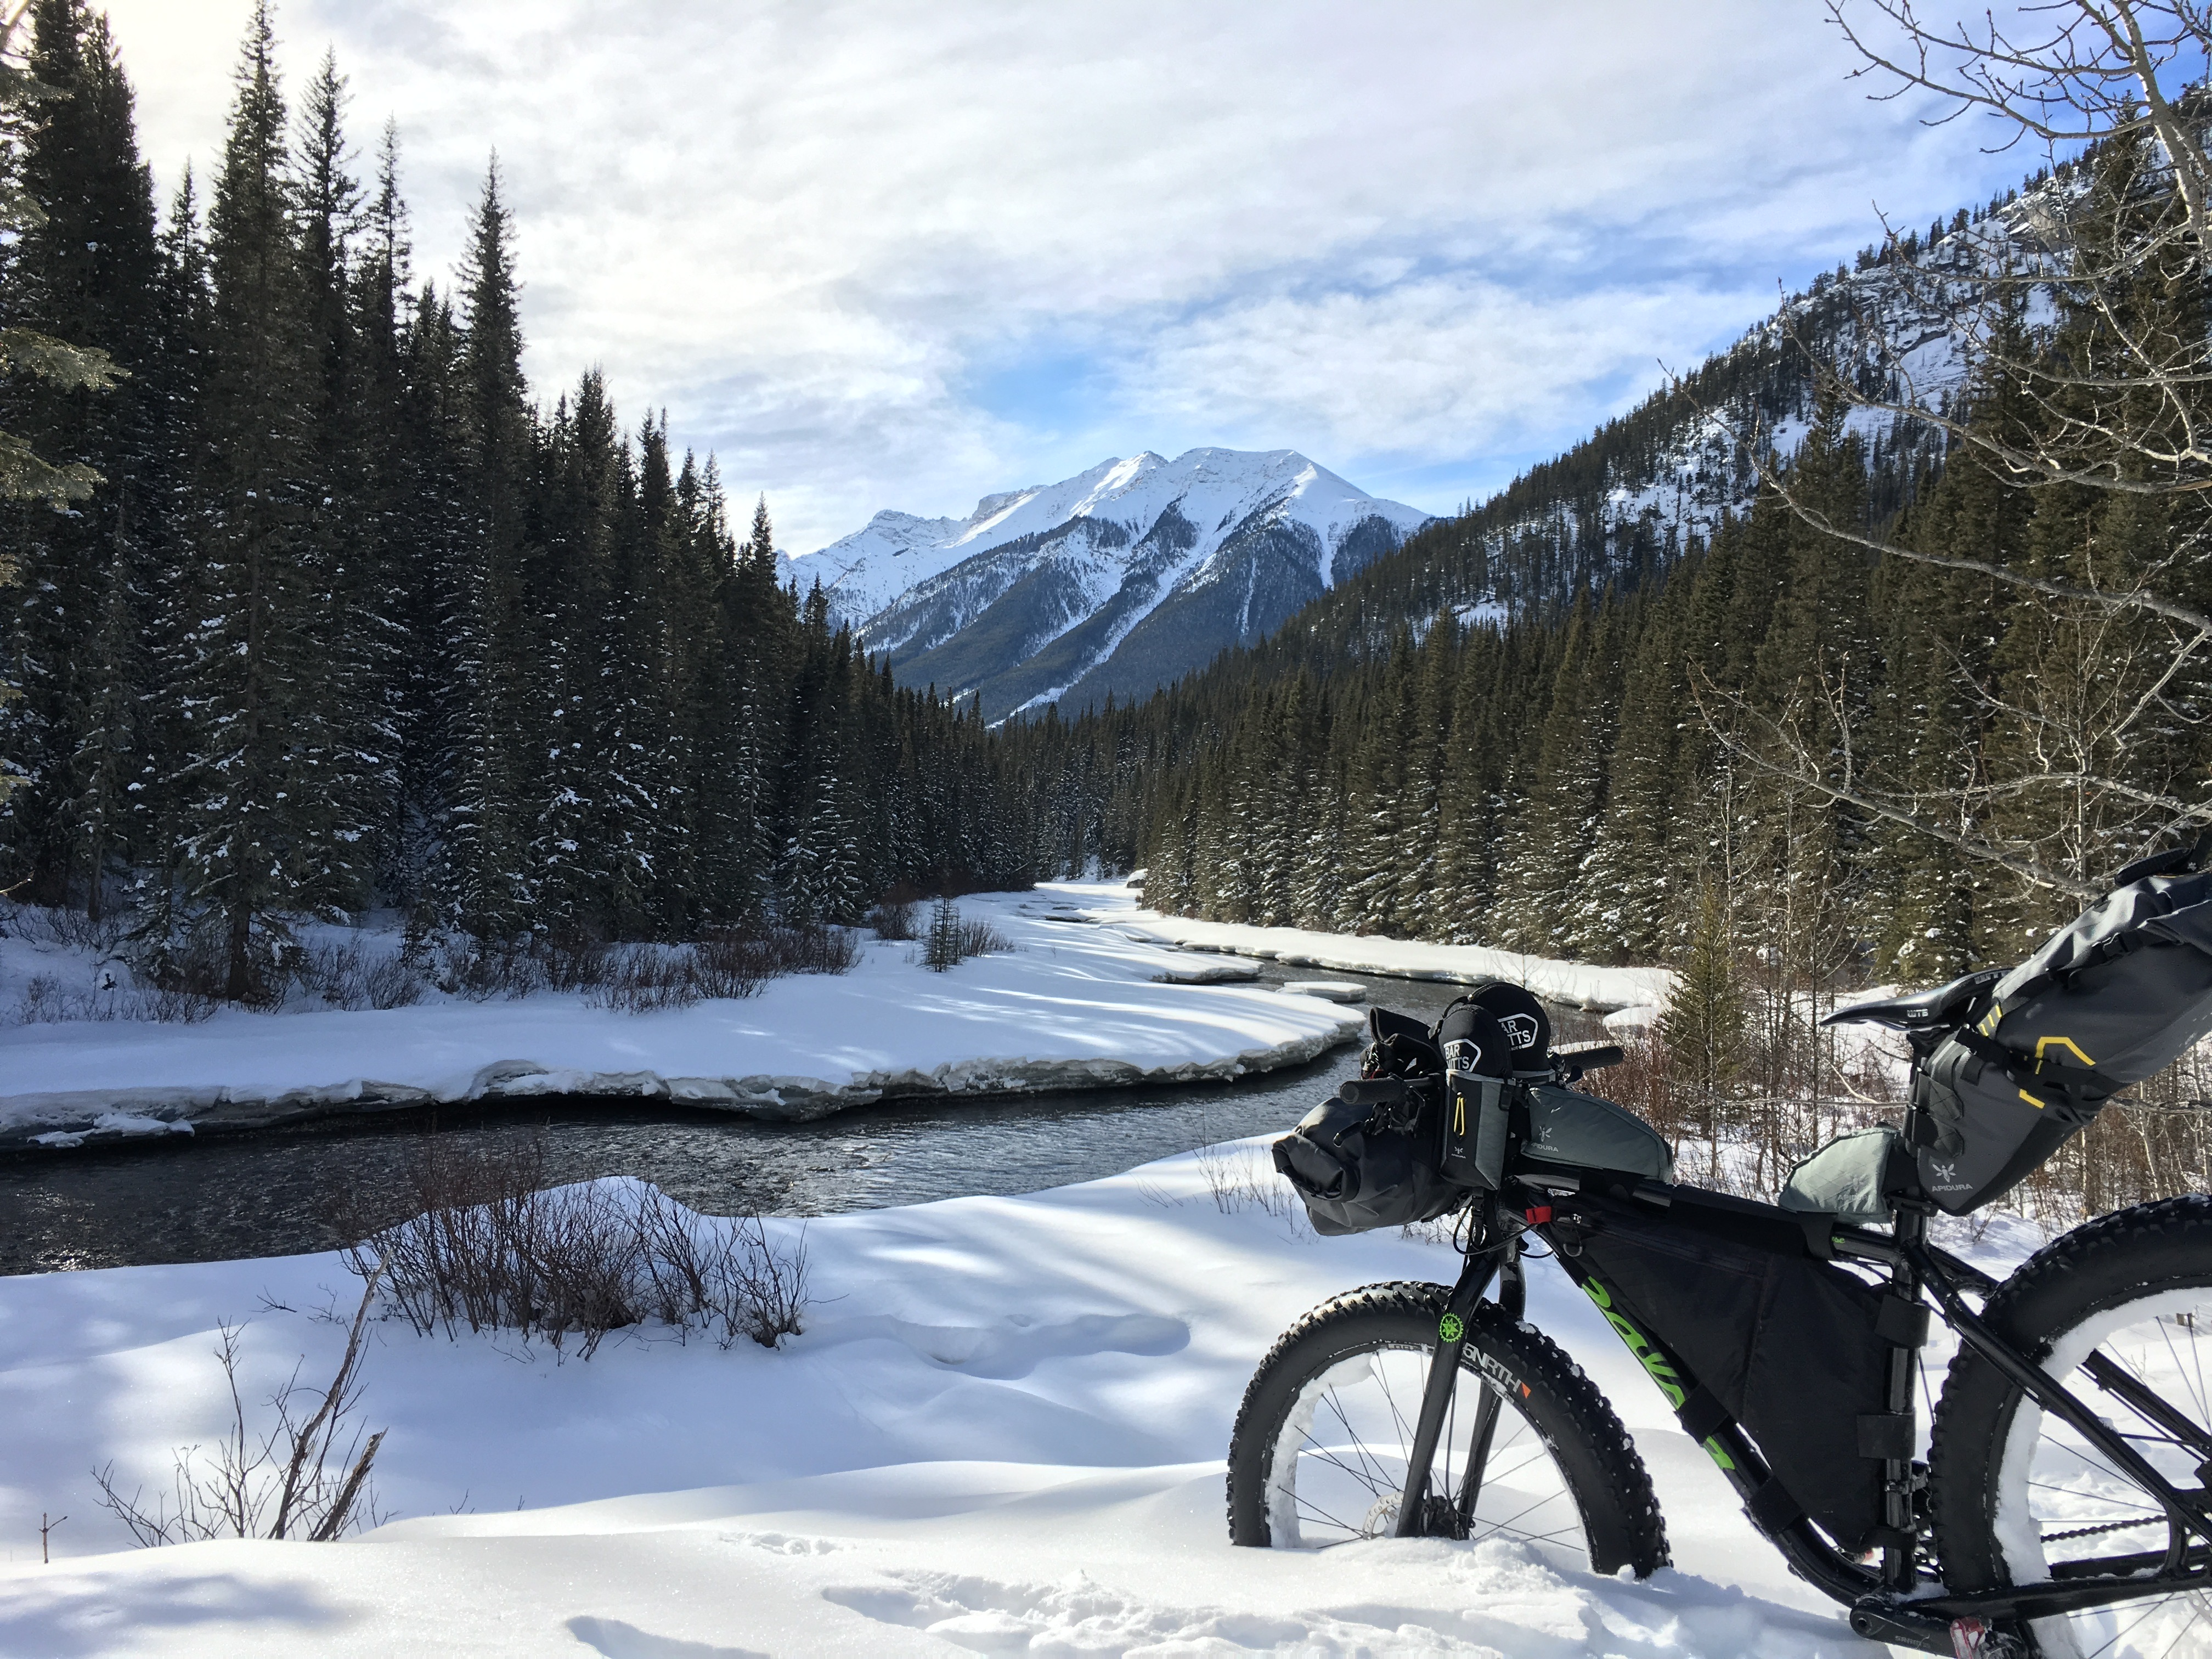 Bikepacking along the Goat Creek Trail, east of Banff. Photo by Ryan Correy